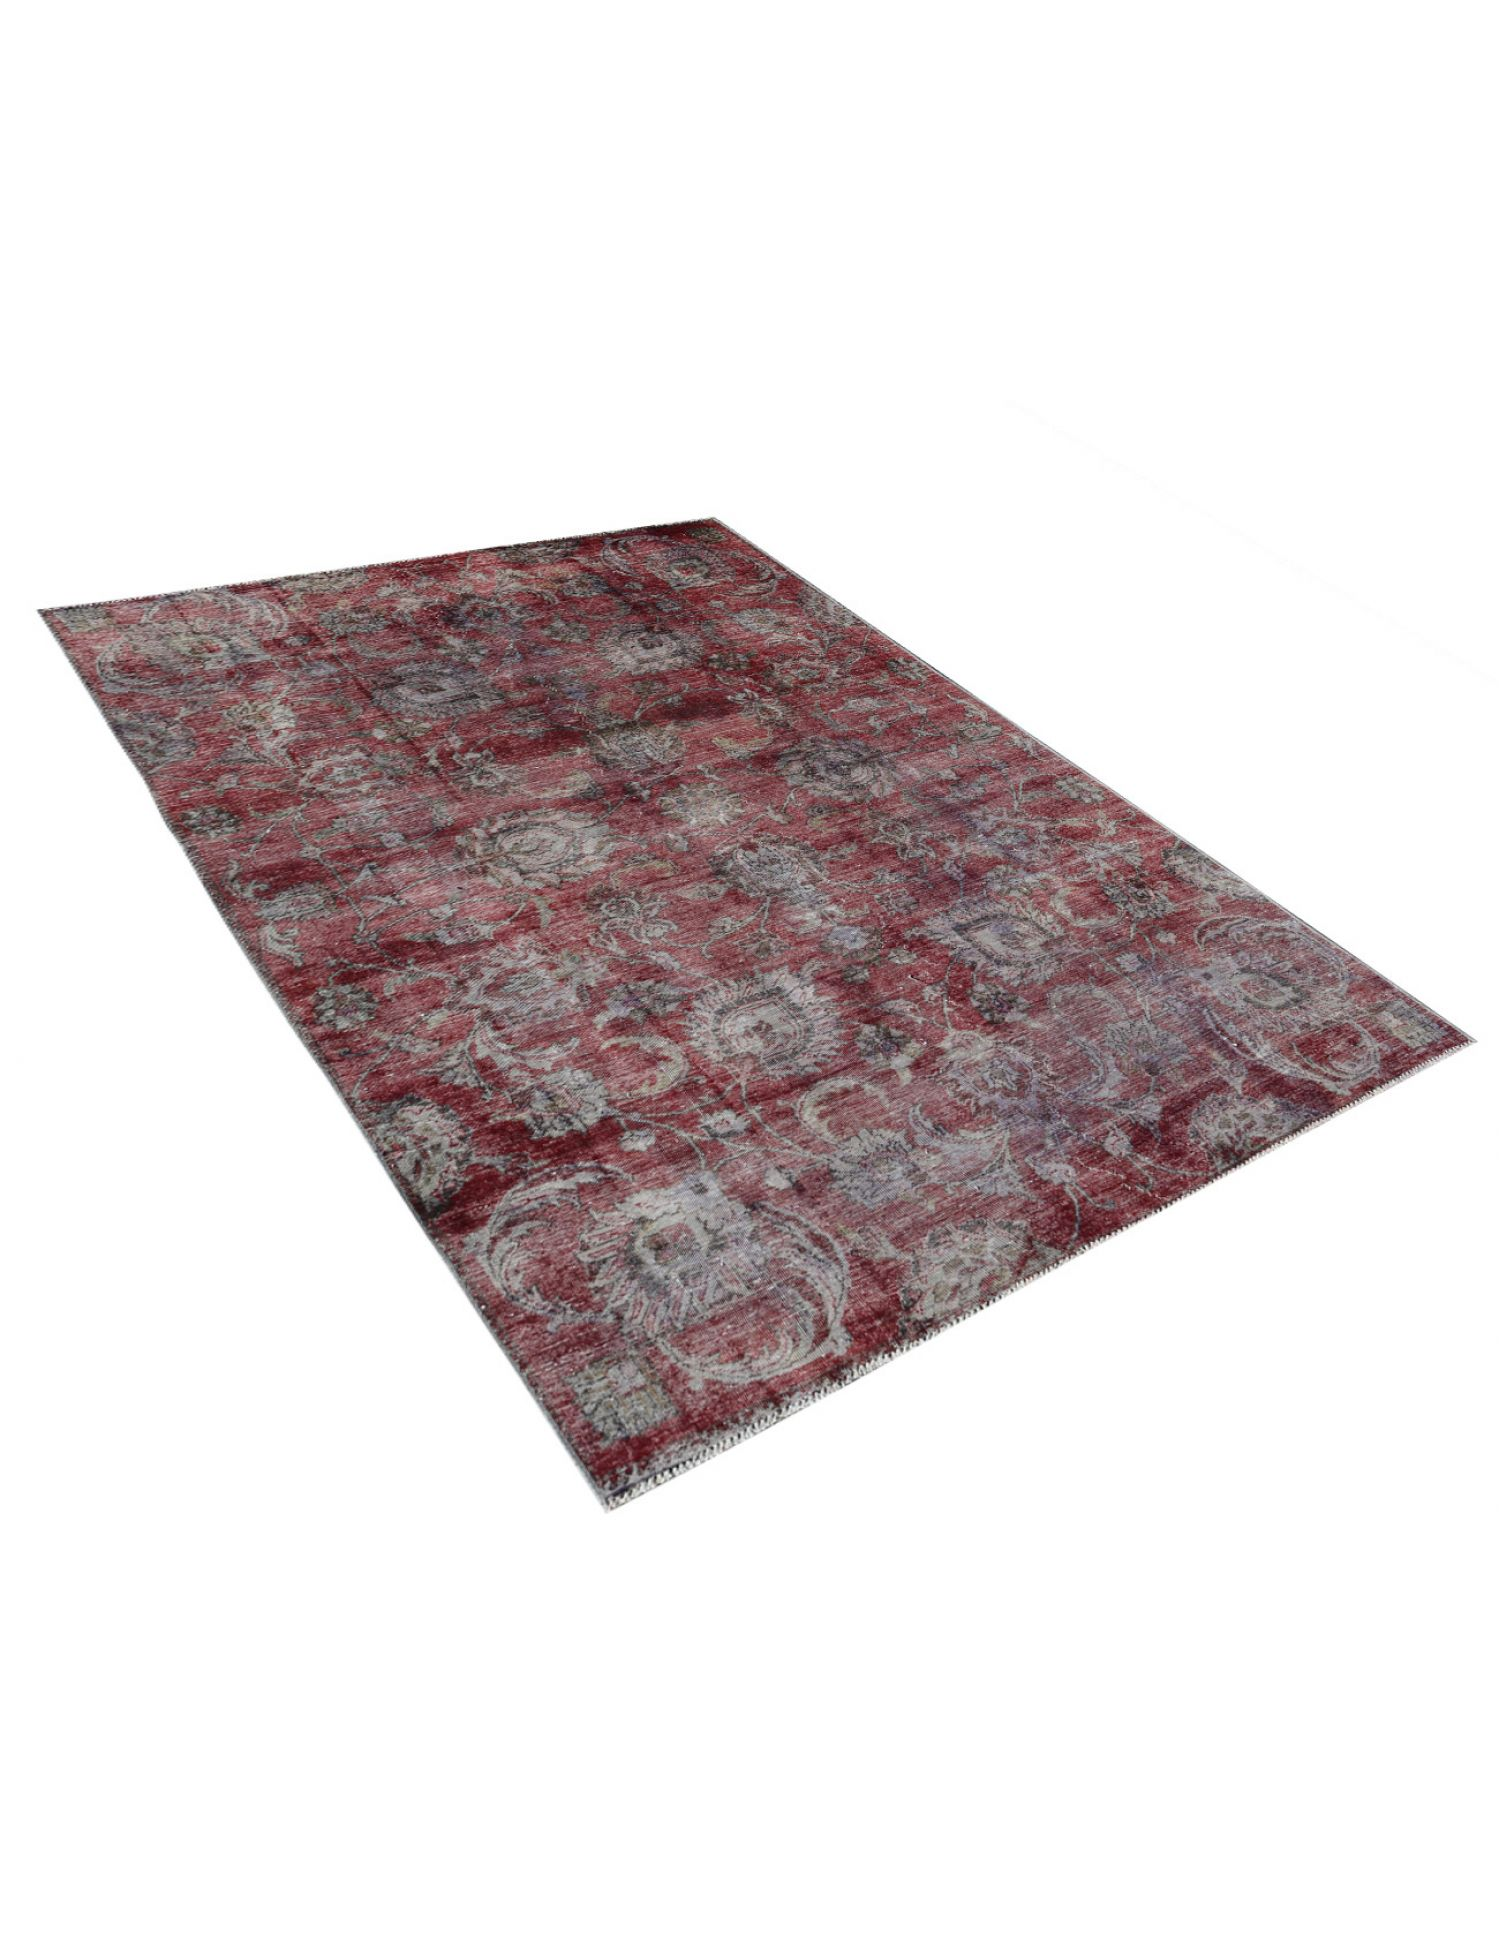 Vintage Carpet  red <br/>281 x 191 cm